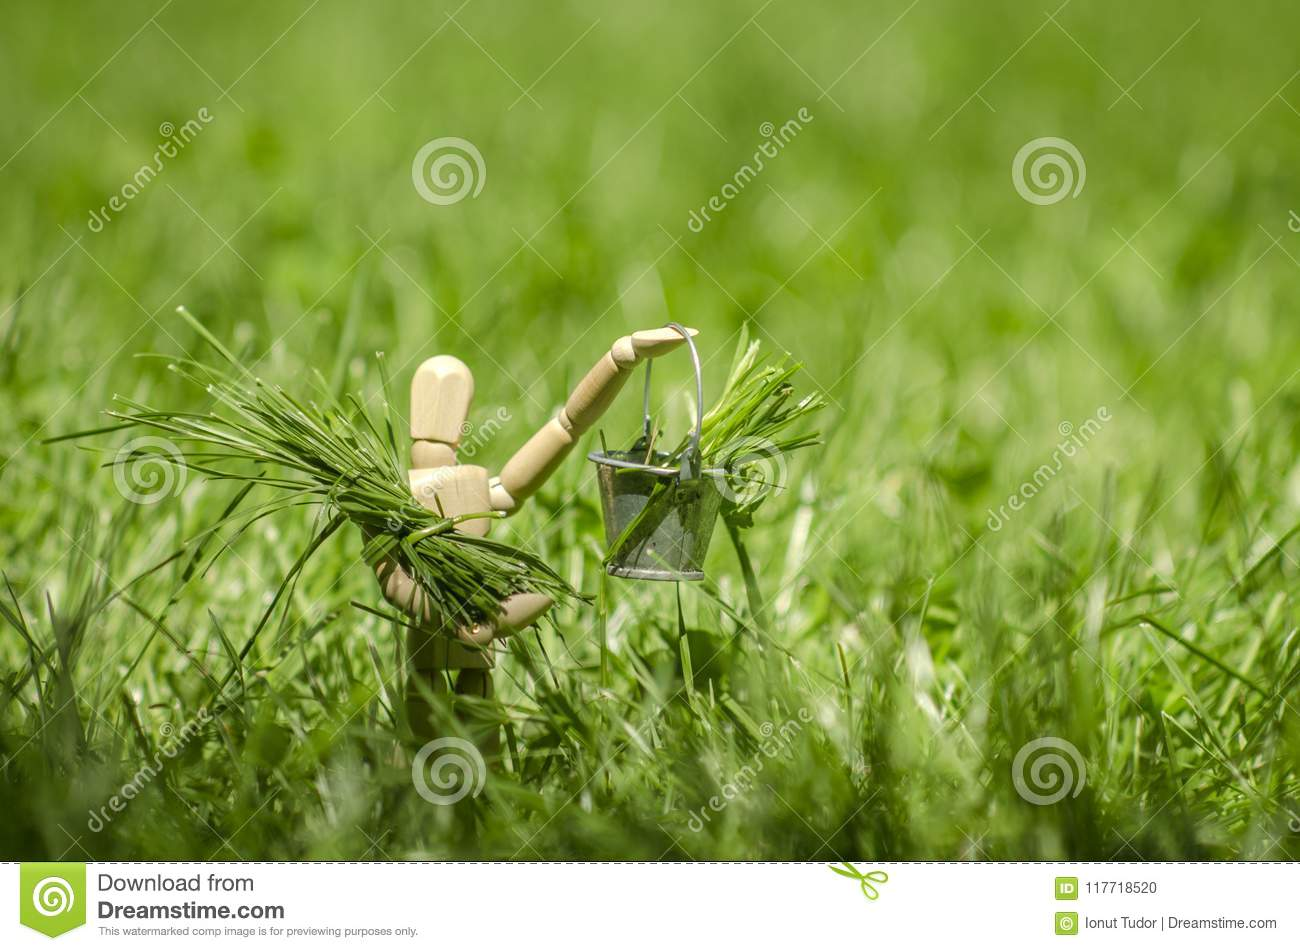 Wooden mannequin with bucket in hand, filled with green grass